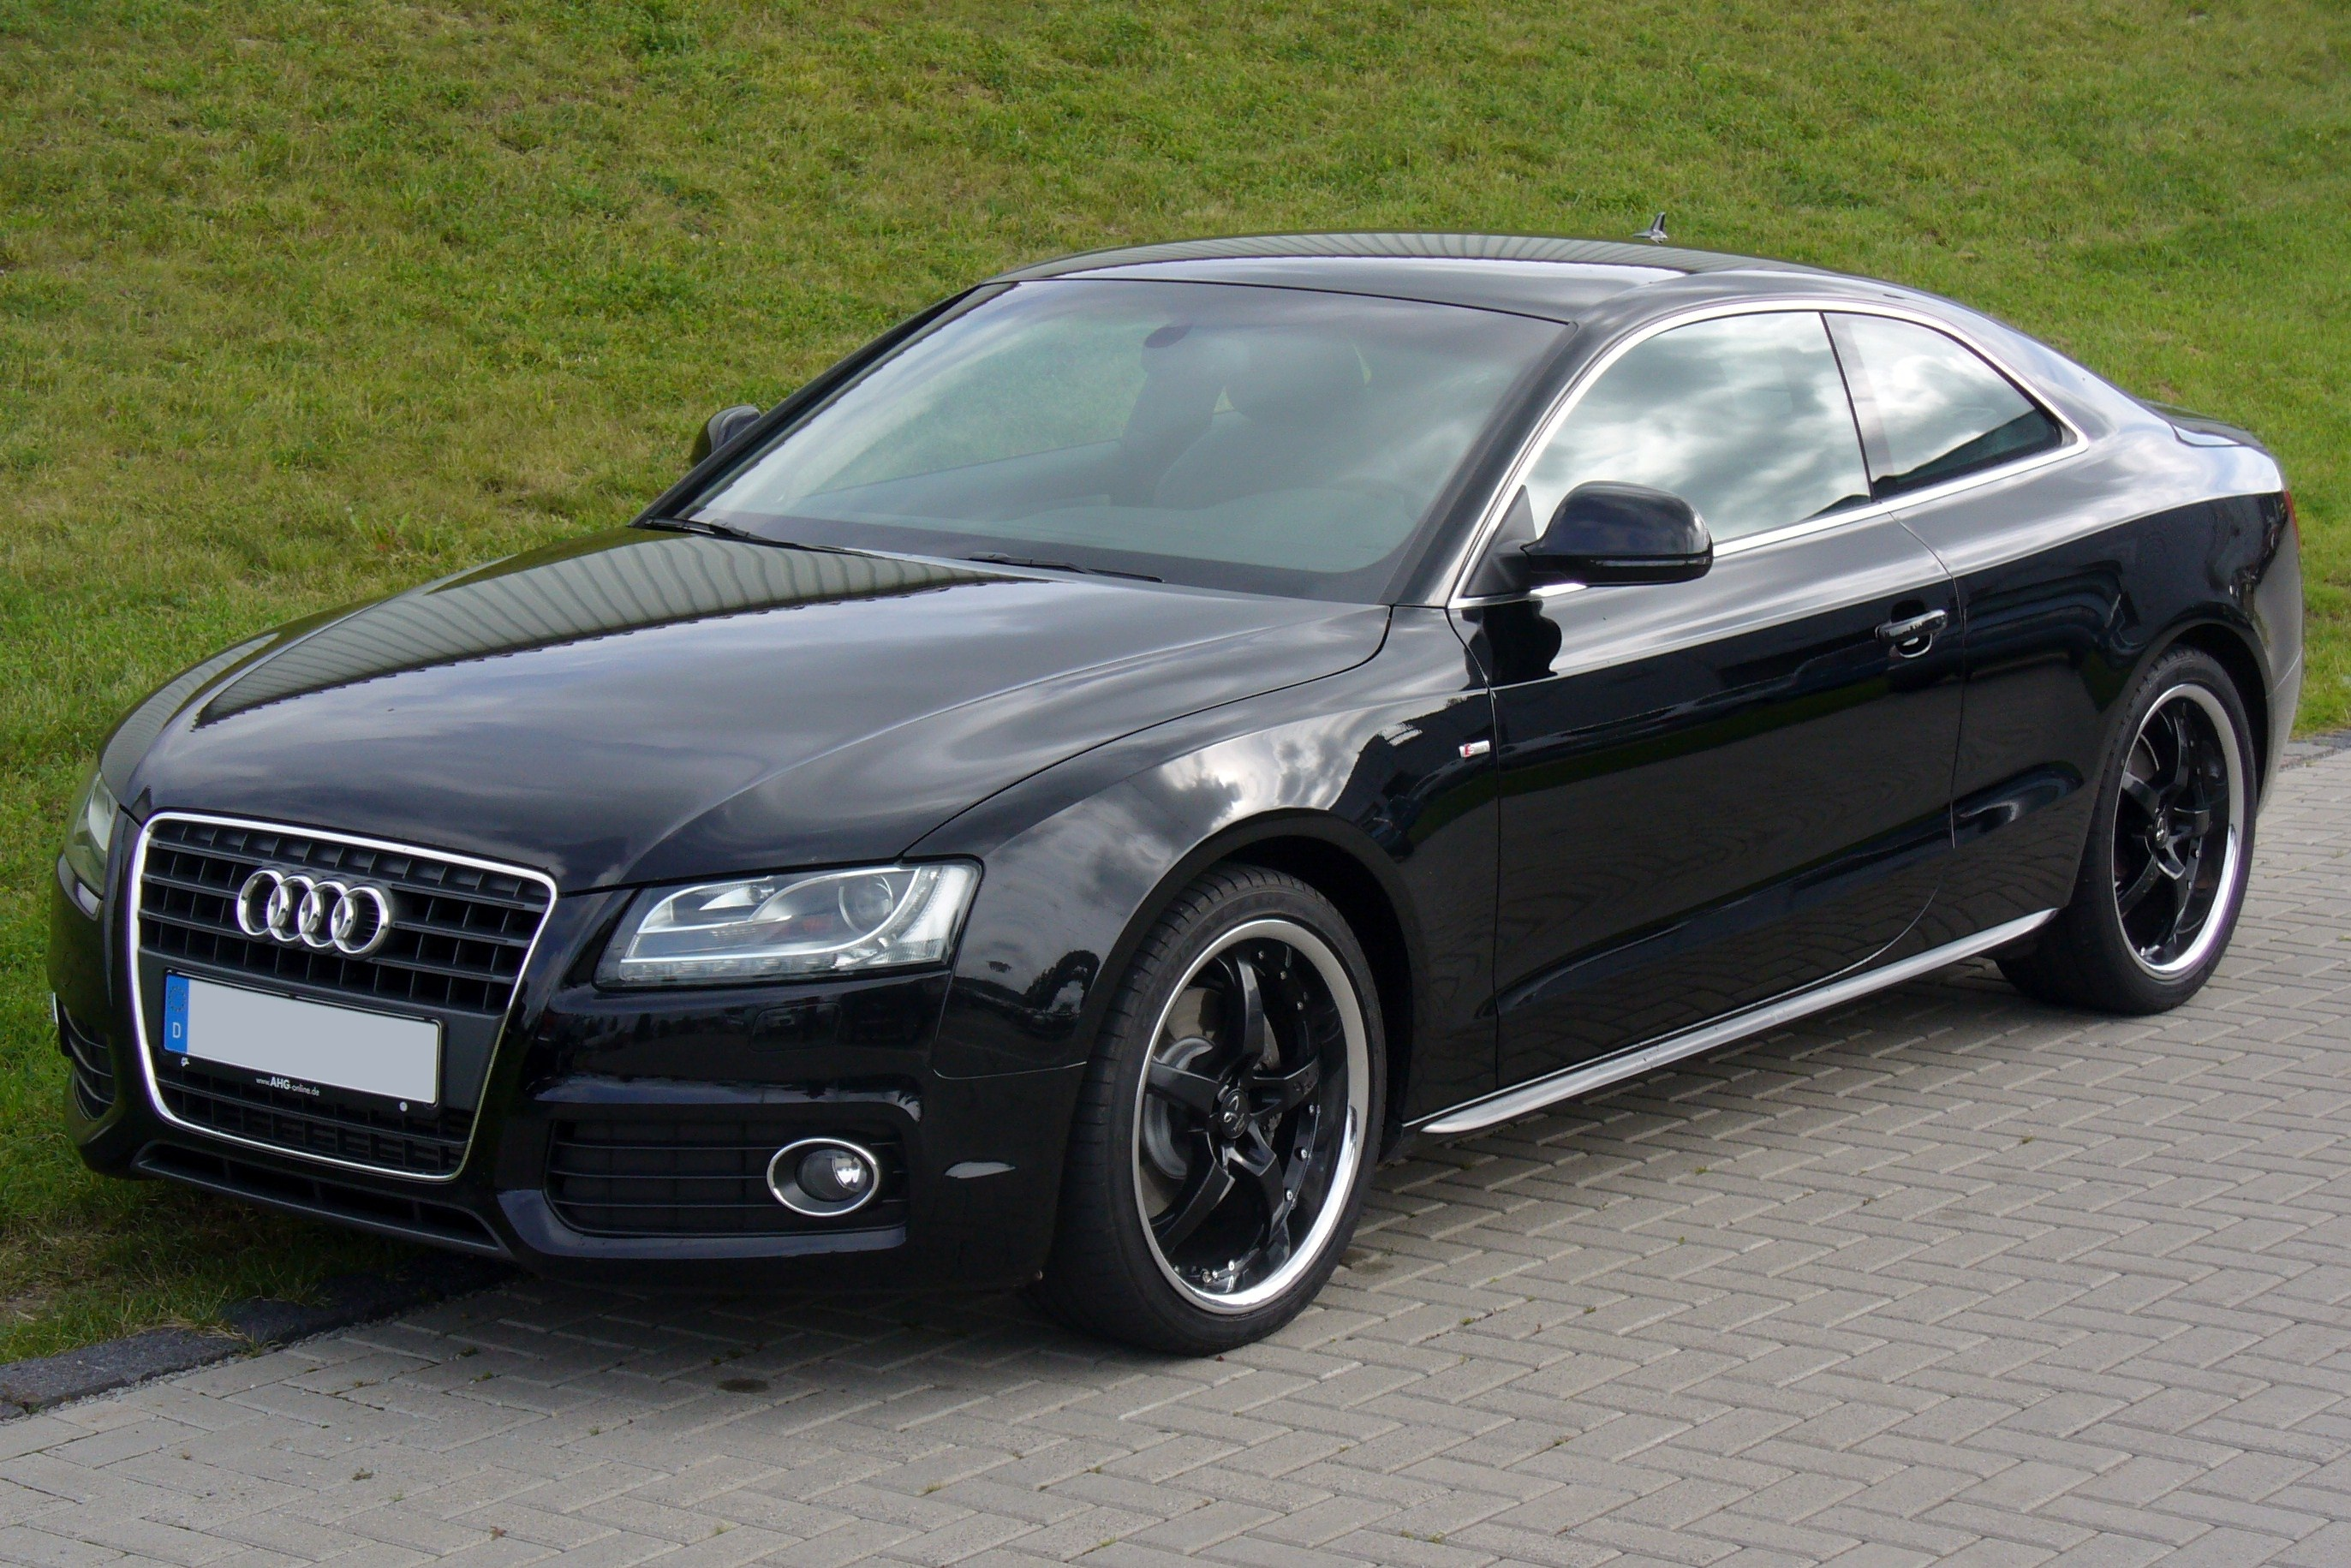 File:Audi A5 Coupé 2.7 TDI multitronic ABT Brilliantschwarz.JPG - Wikimedia Commons